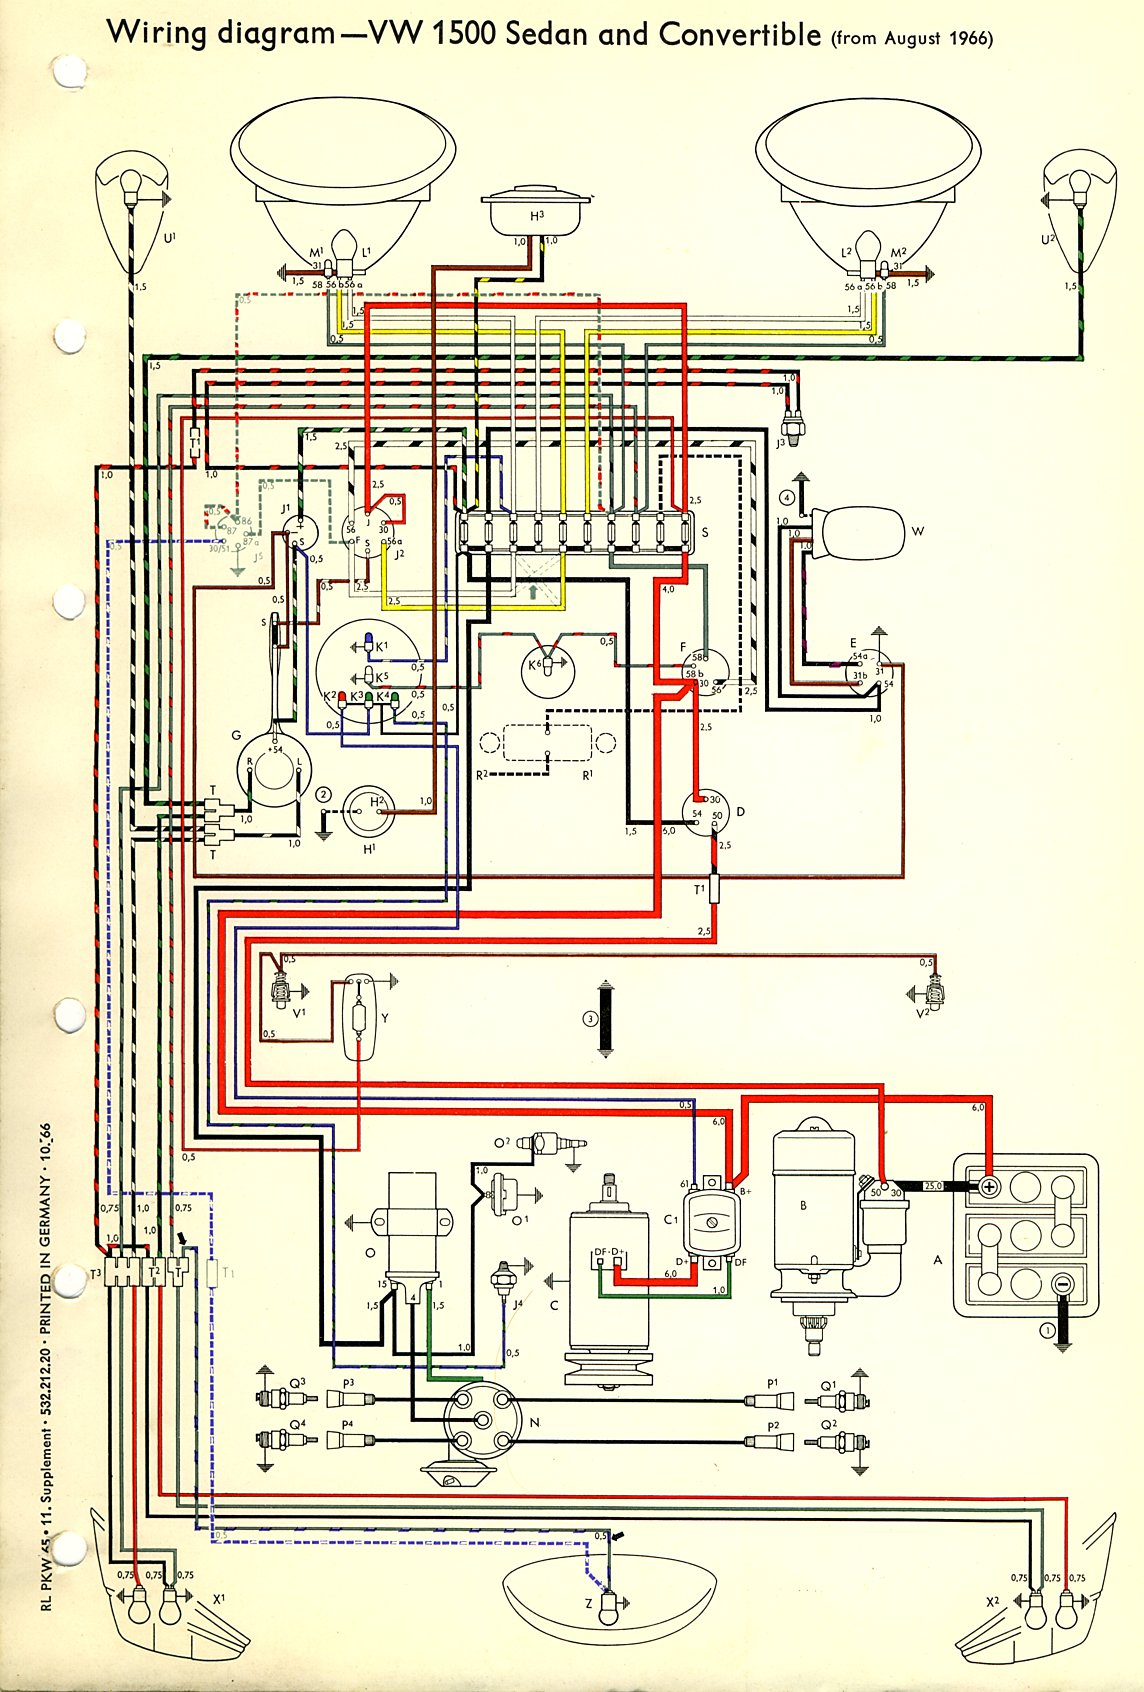 1975 Super Beetle Wiring Diagram Schematics Diagrams Citroen C3 Bsi Thesamba Com Type 1 Rh 1979 74